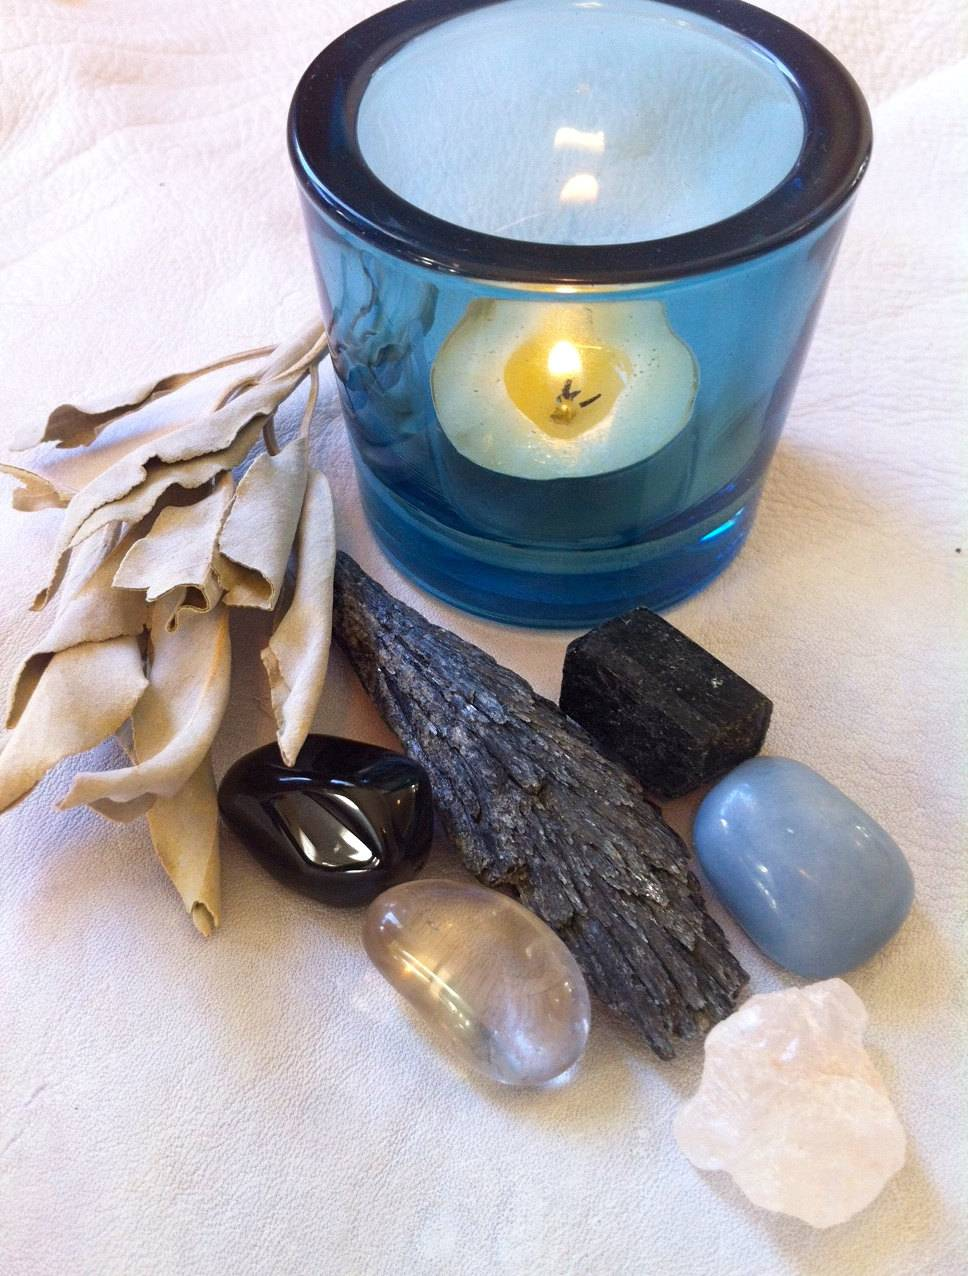 Energetic clearing gem and boundary management completer set with descriptions